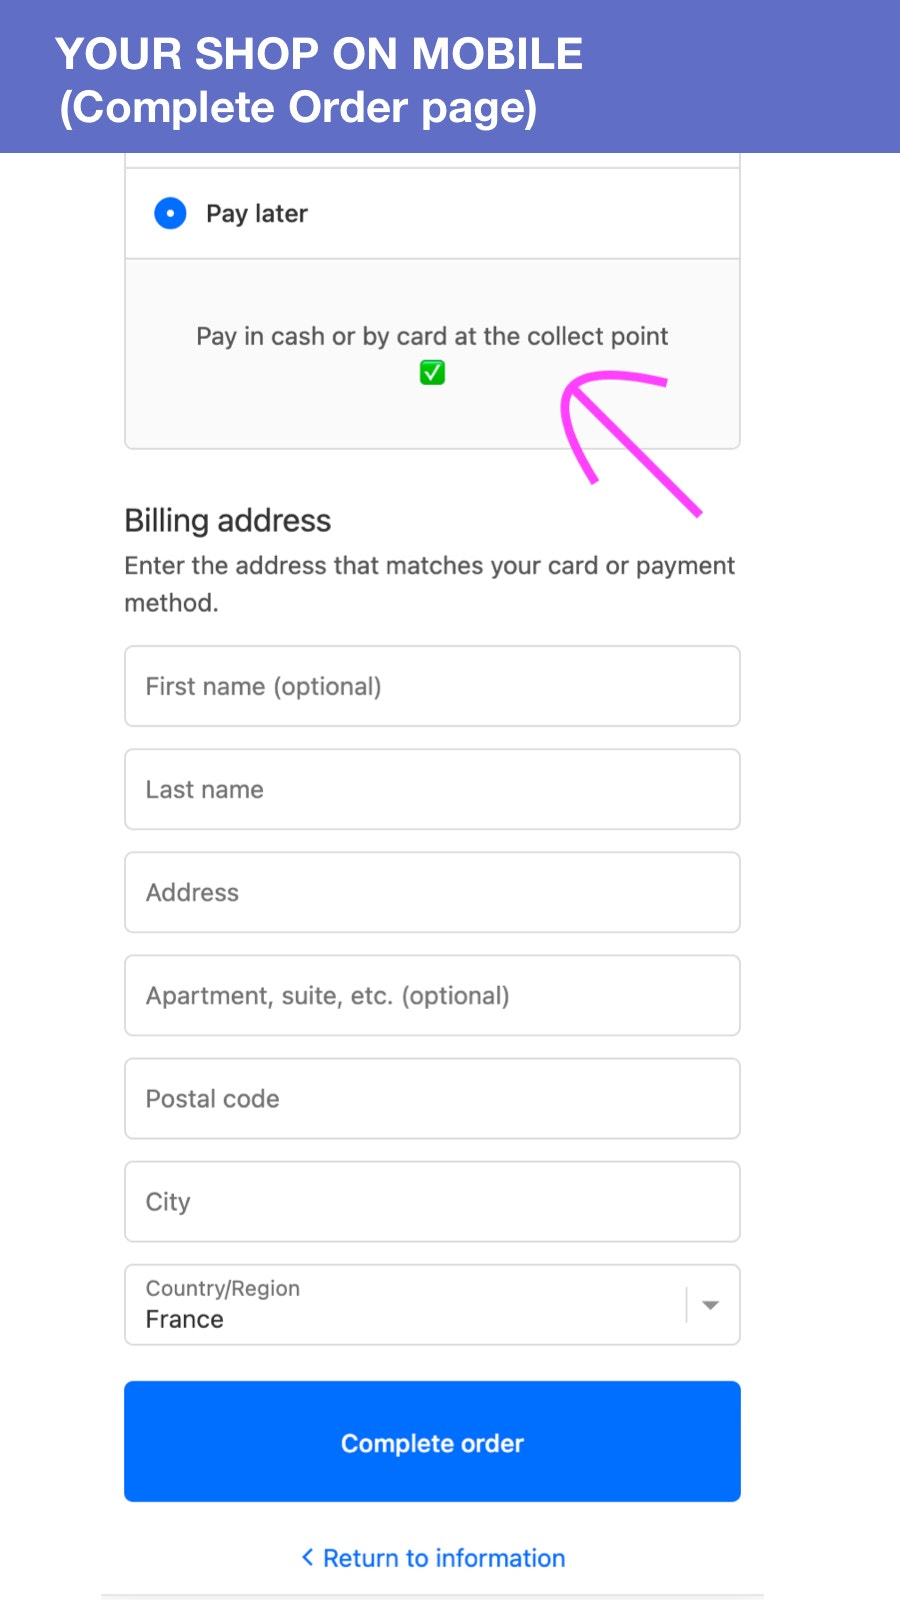 Mobile pay later page